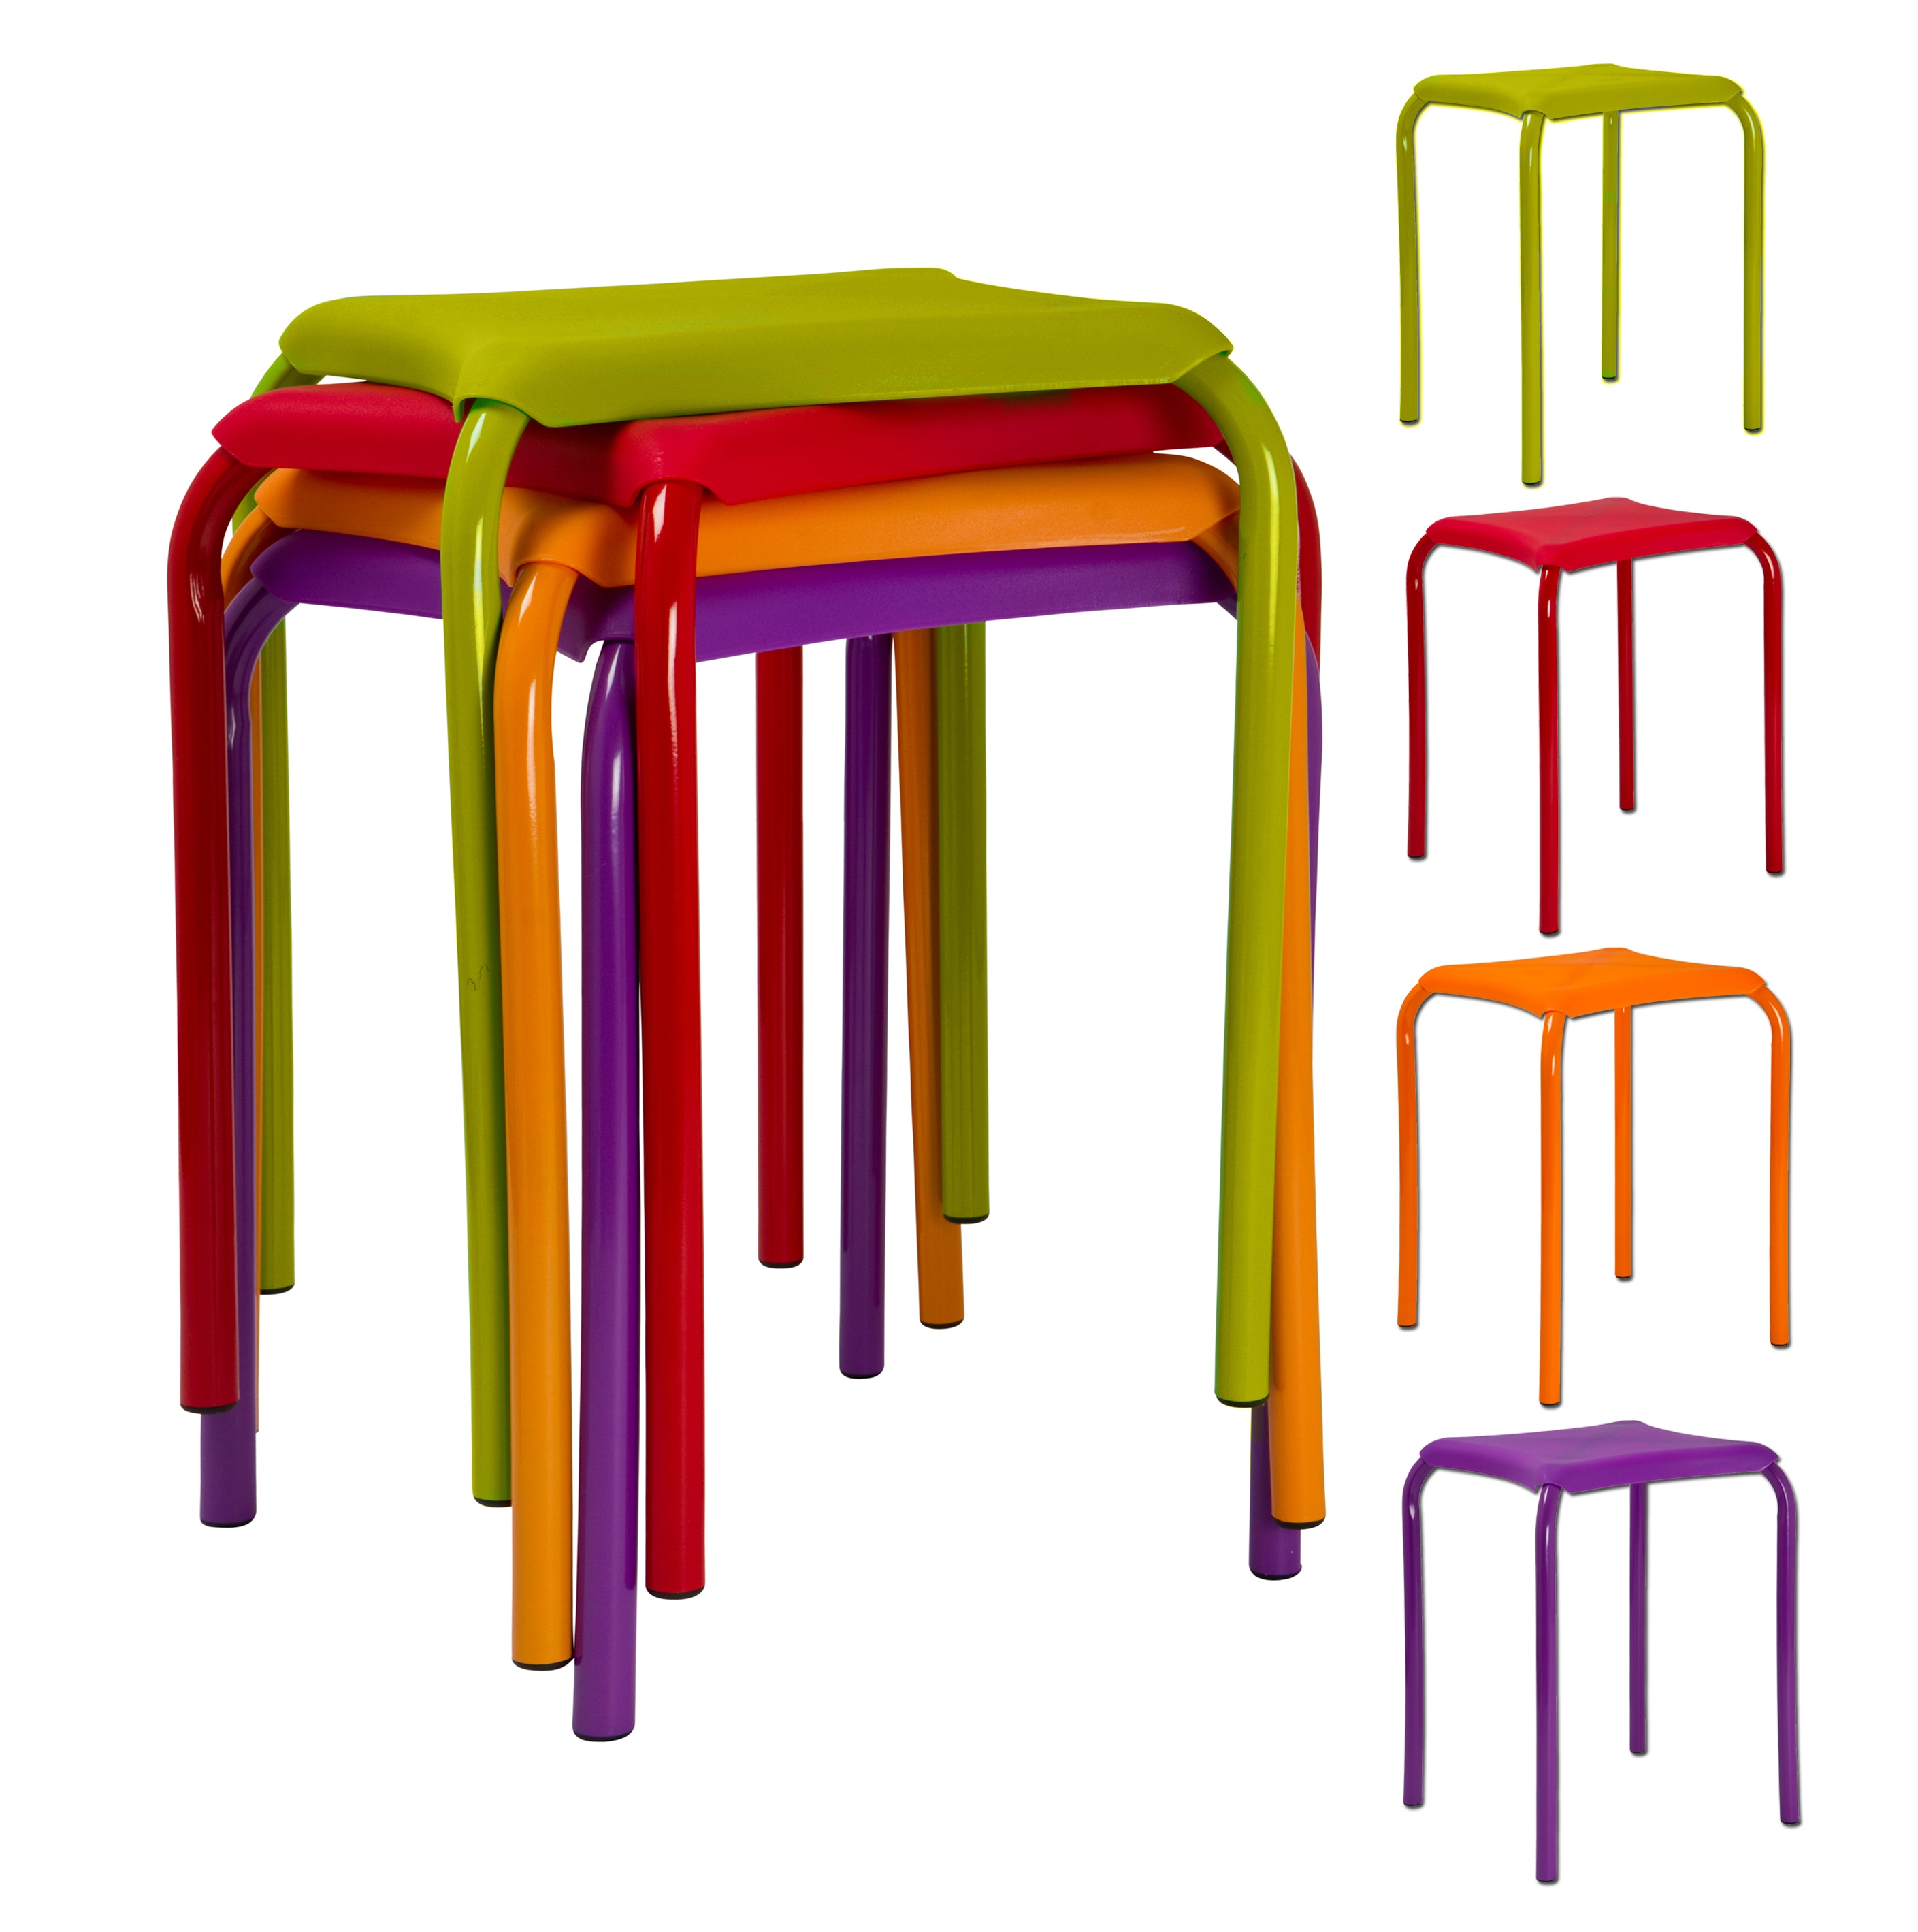 Kids Metal & Plastic fortable Sitting Stools Utility Bedroom